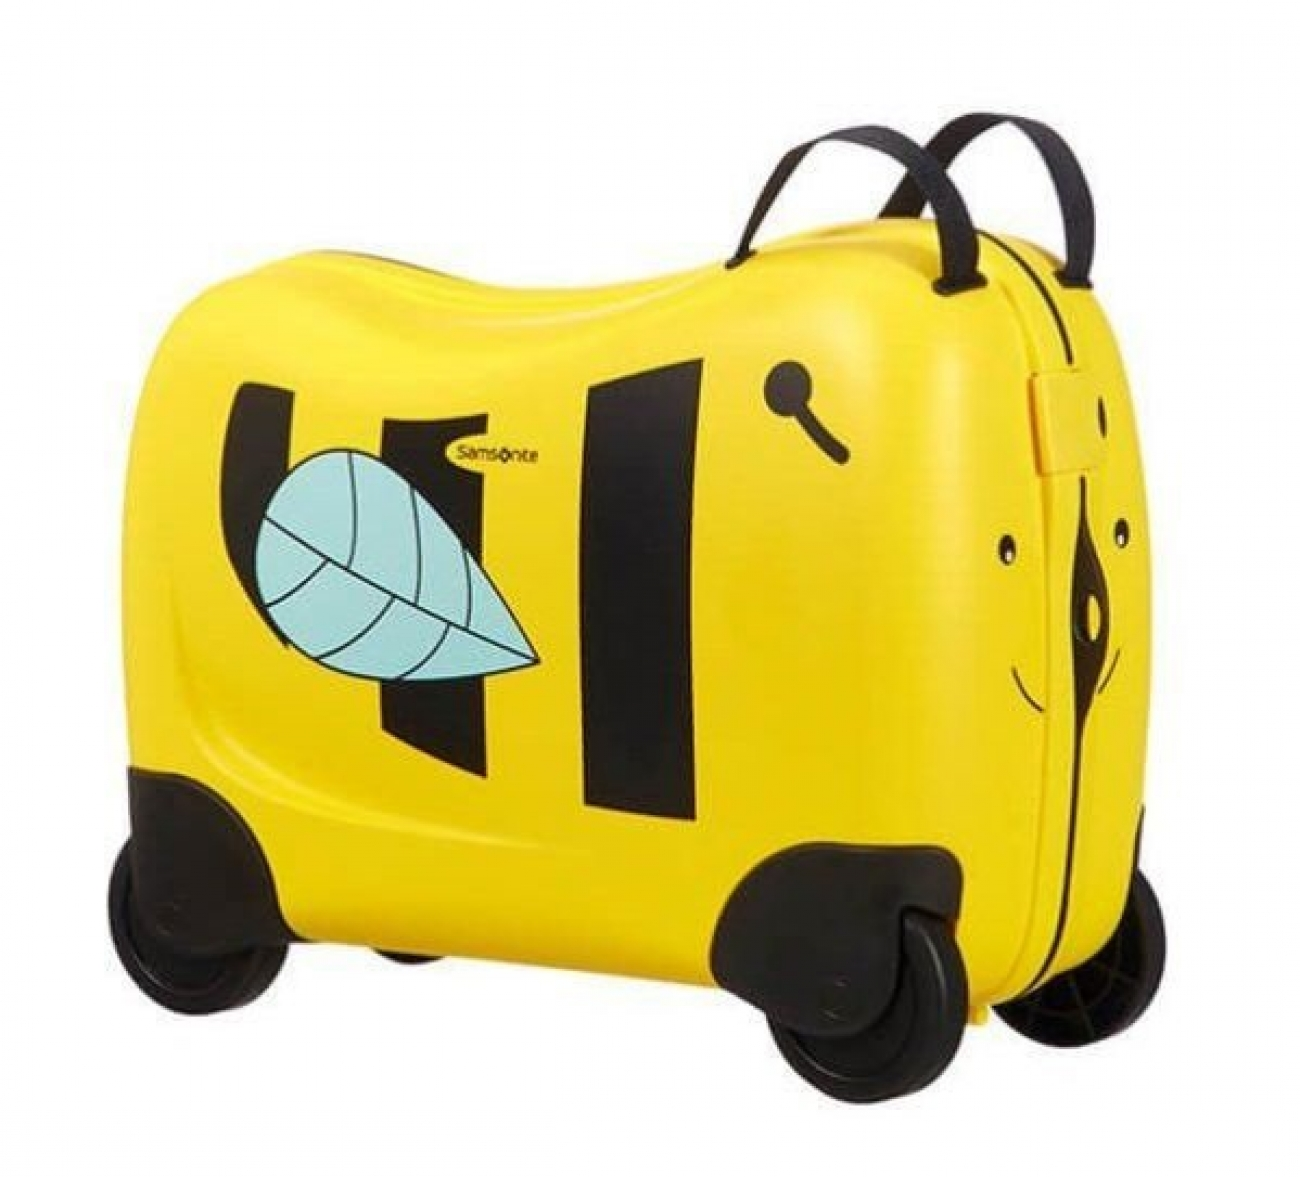 Samsonite Dream Rider Ride-on Suitcase - Bee